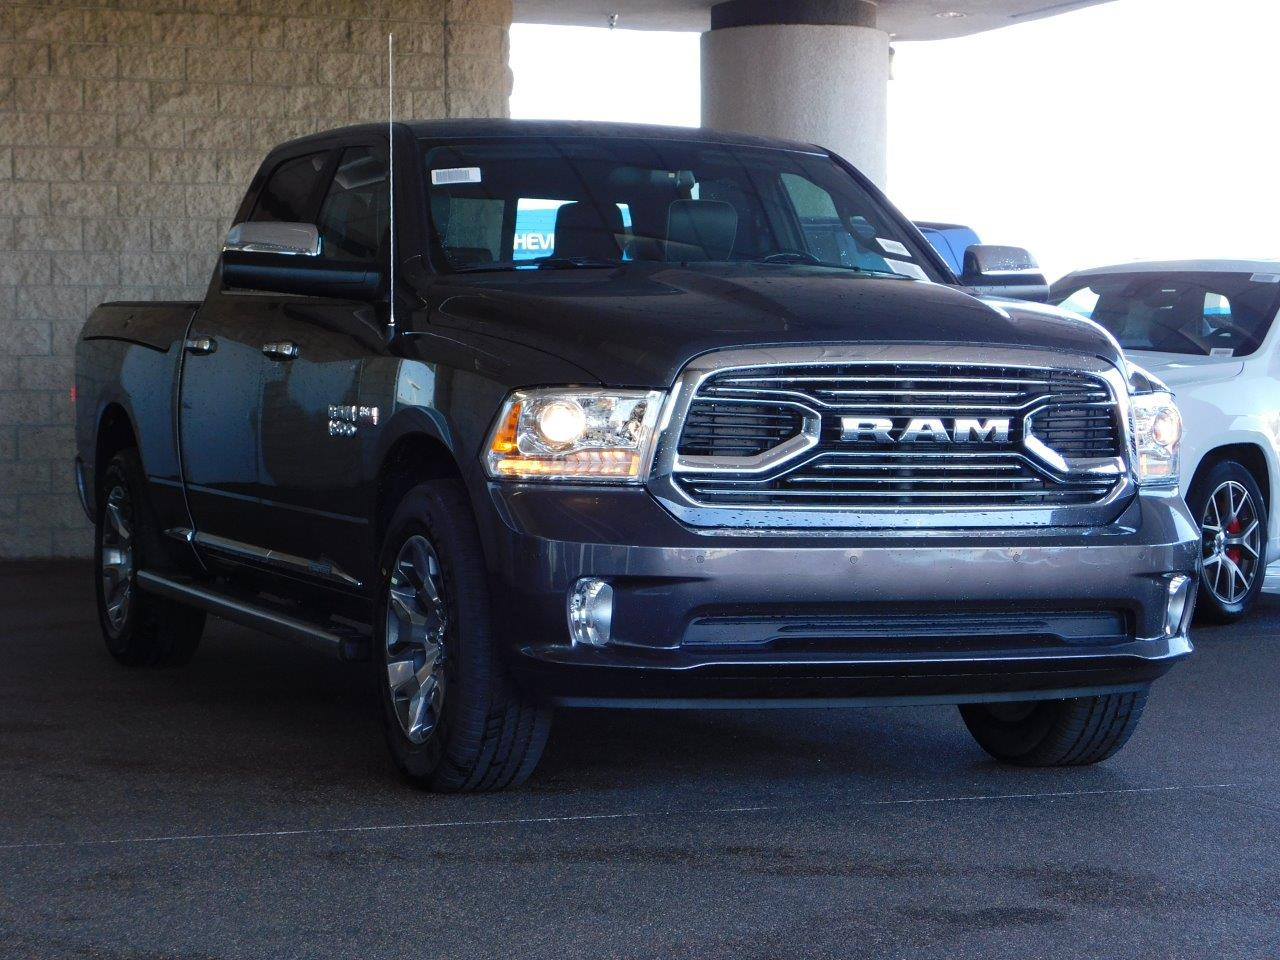 2017 Ram 1500 Crew Cab 4x4, Pickup #7TL10677 - photo 4